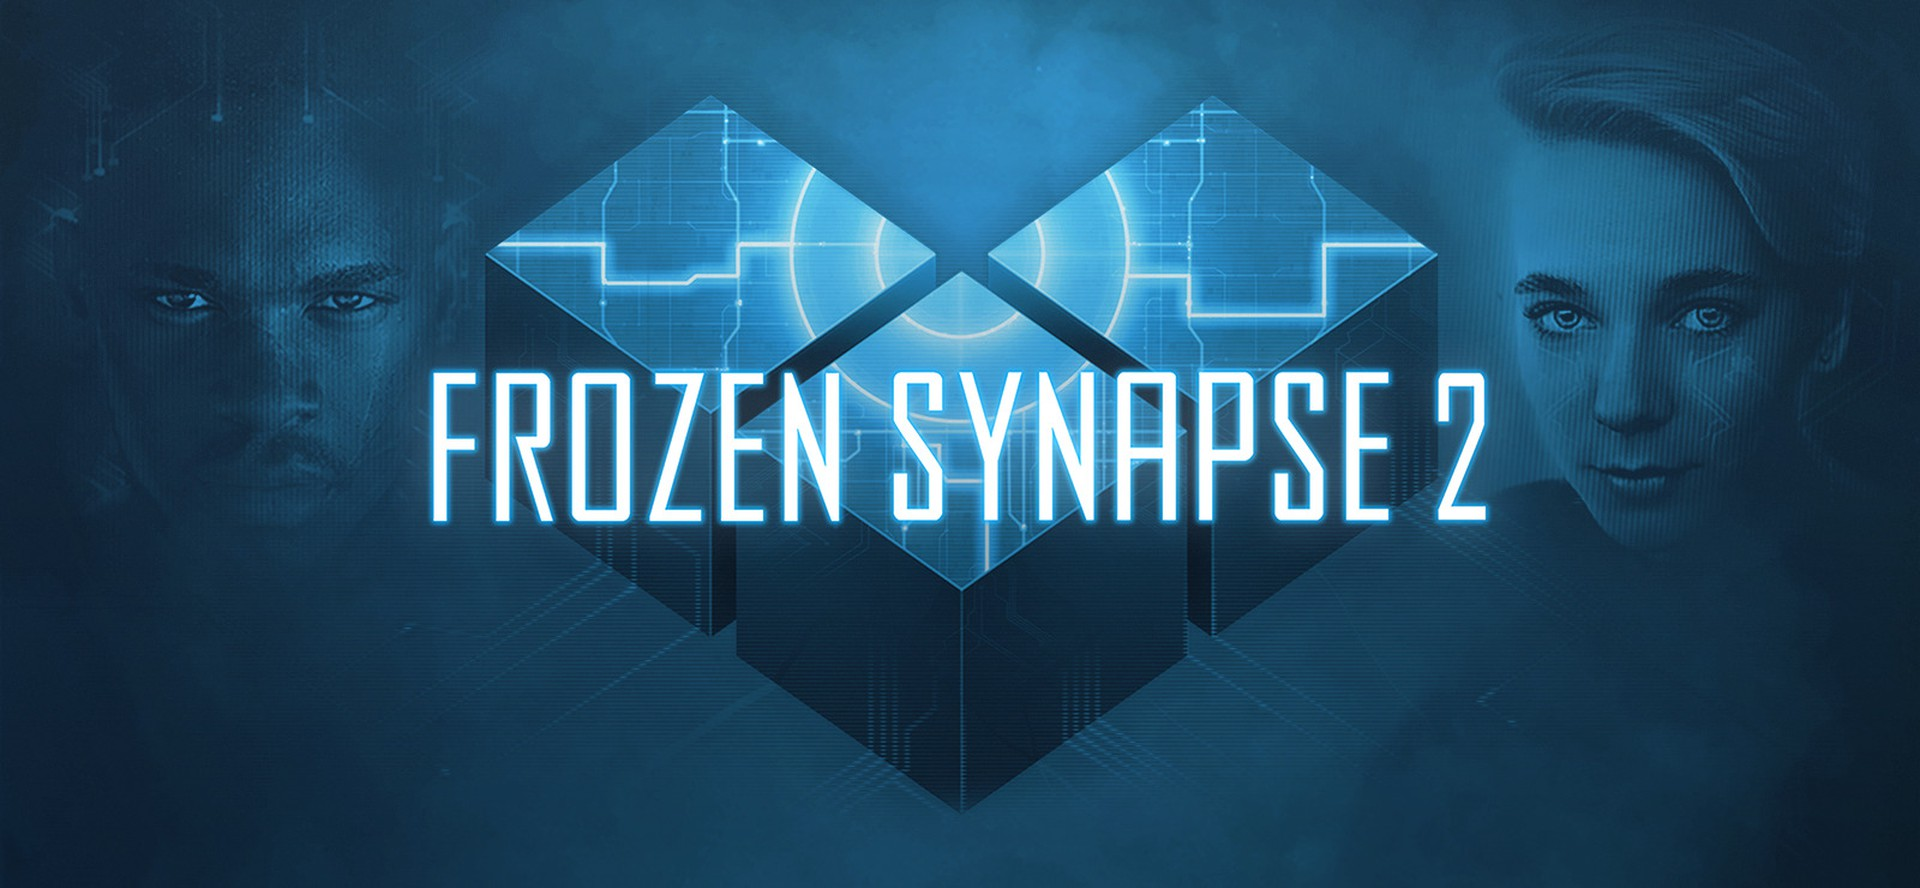 Frozen Synapse 2 Video